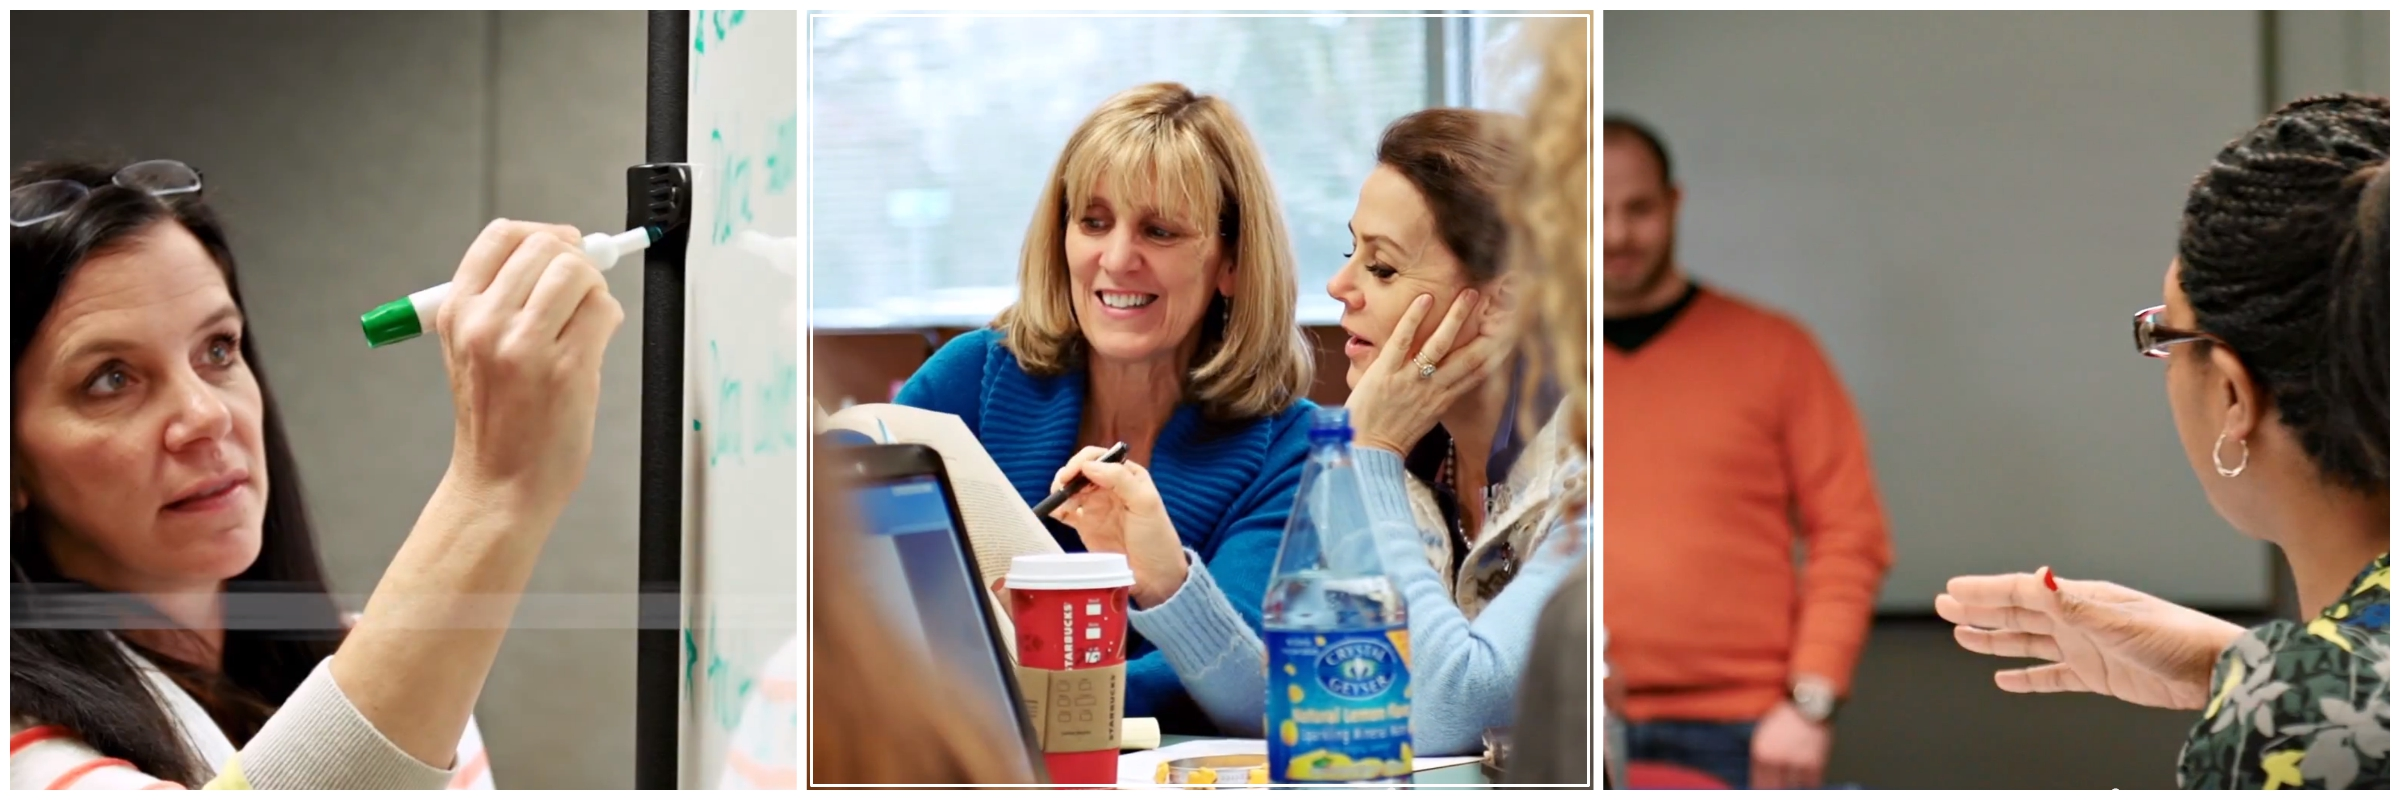 Adult education degree online